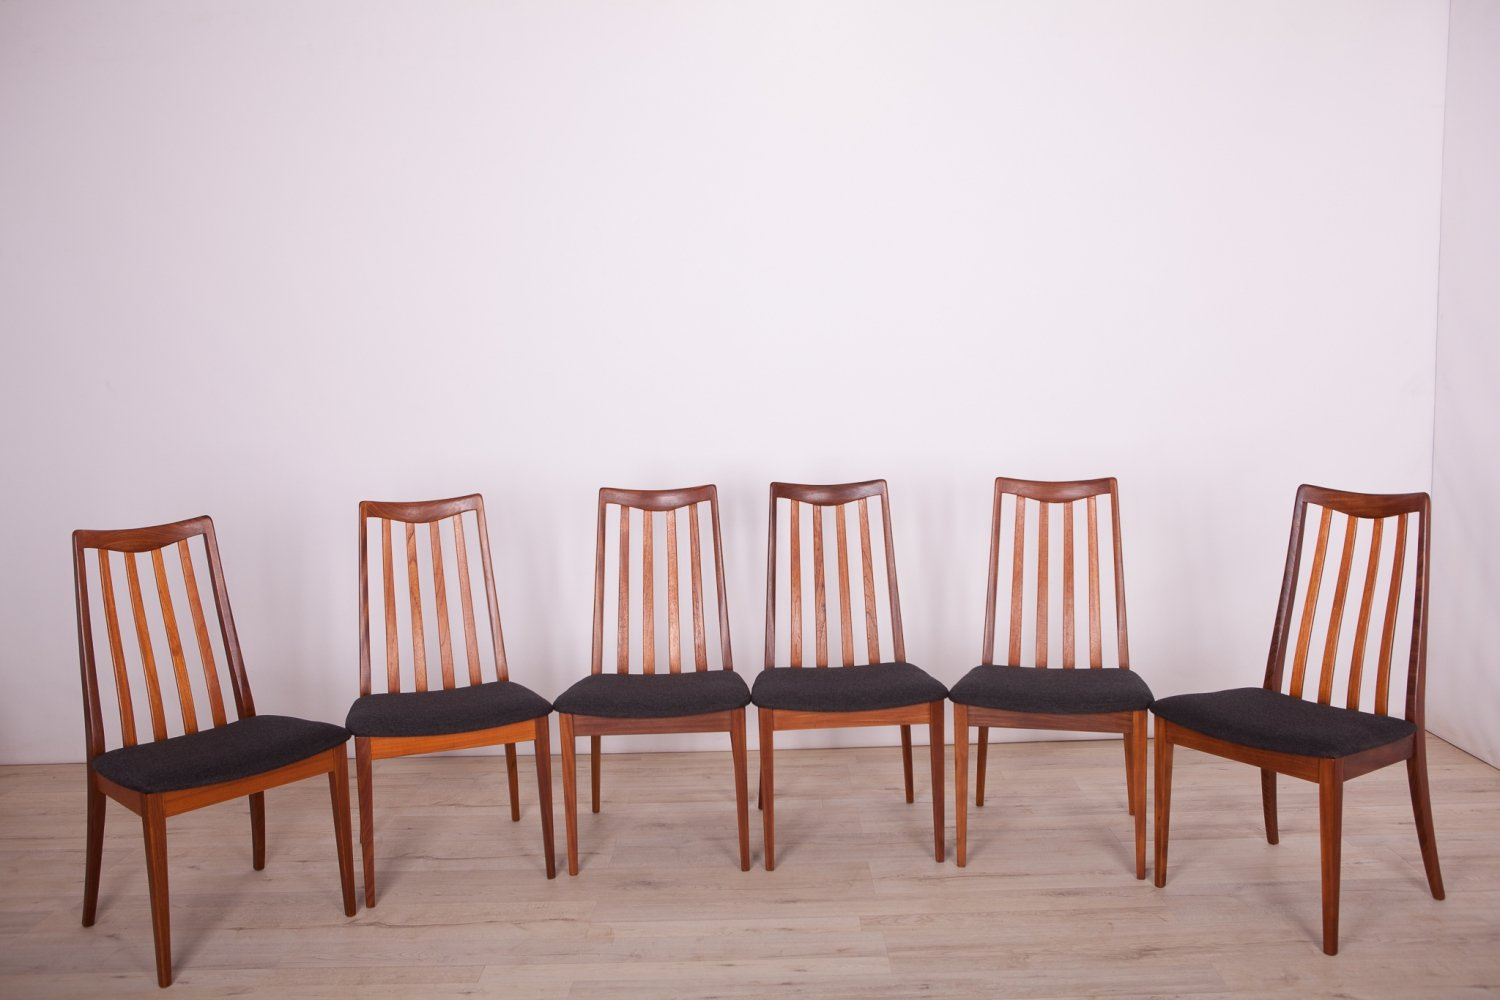 Wondrous Set Of 6 Dining Chairs By Leslie Dandy For G Plan 1960S Dailytribune Chair Design For Home Dailytribuneorg